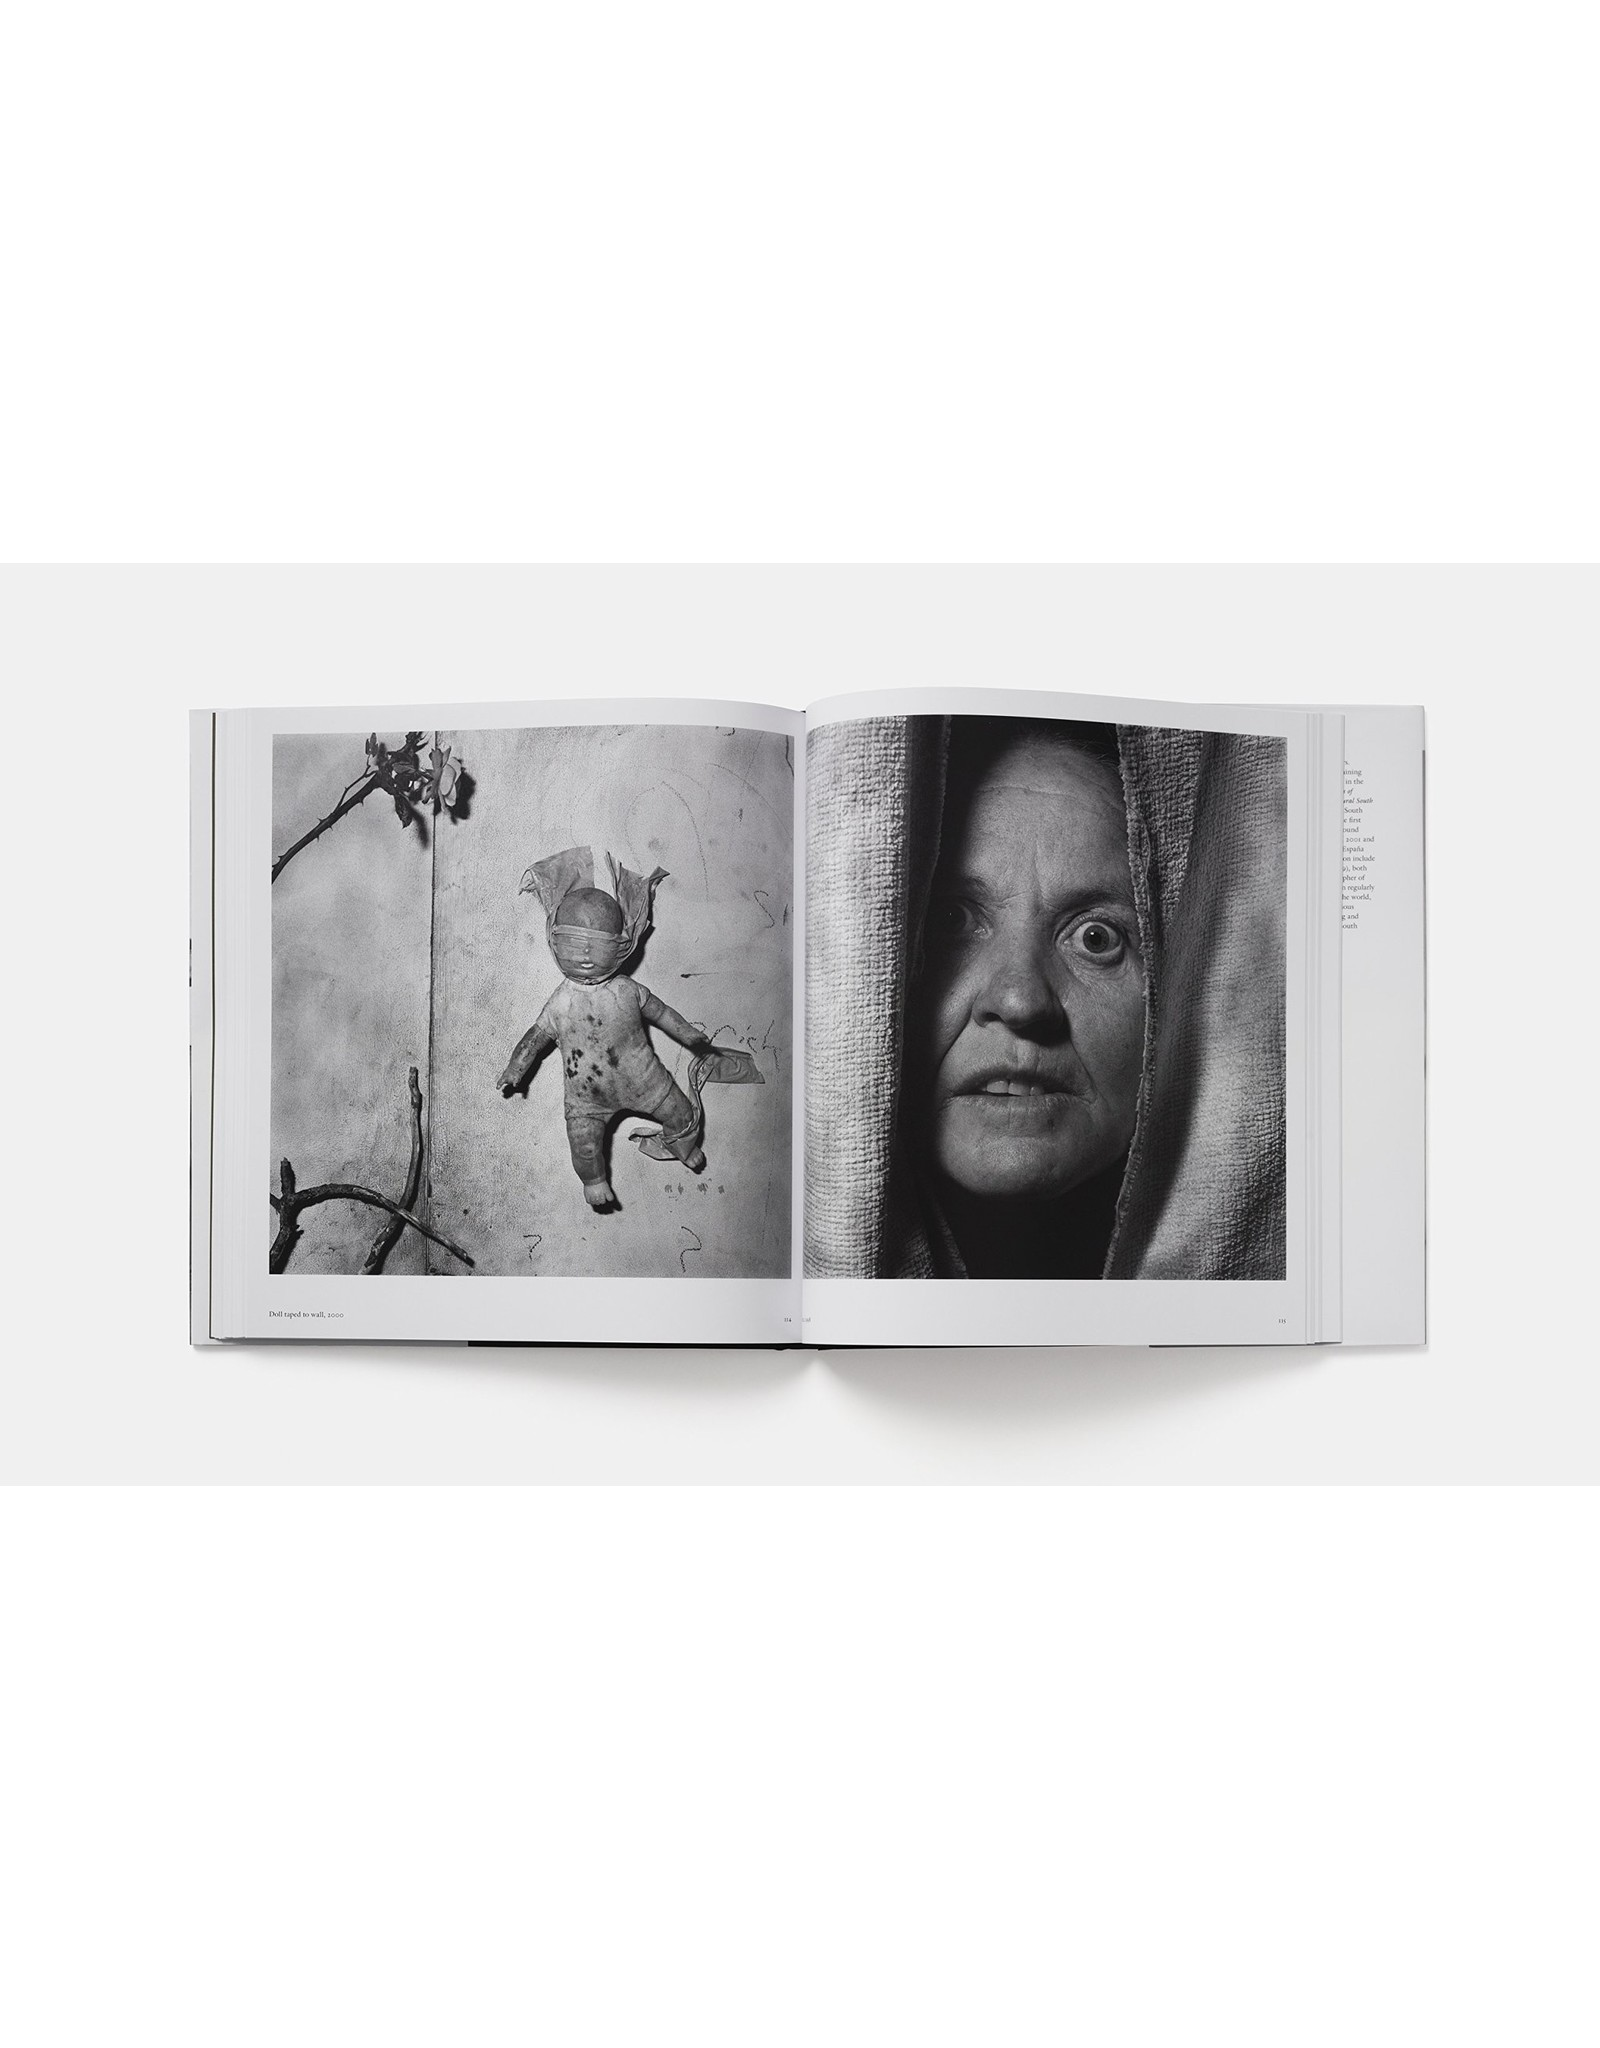 Roger Ballen: Outland (2nd Edition)